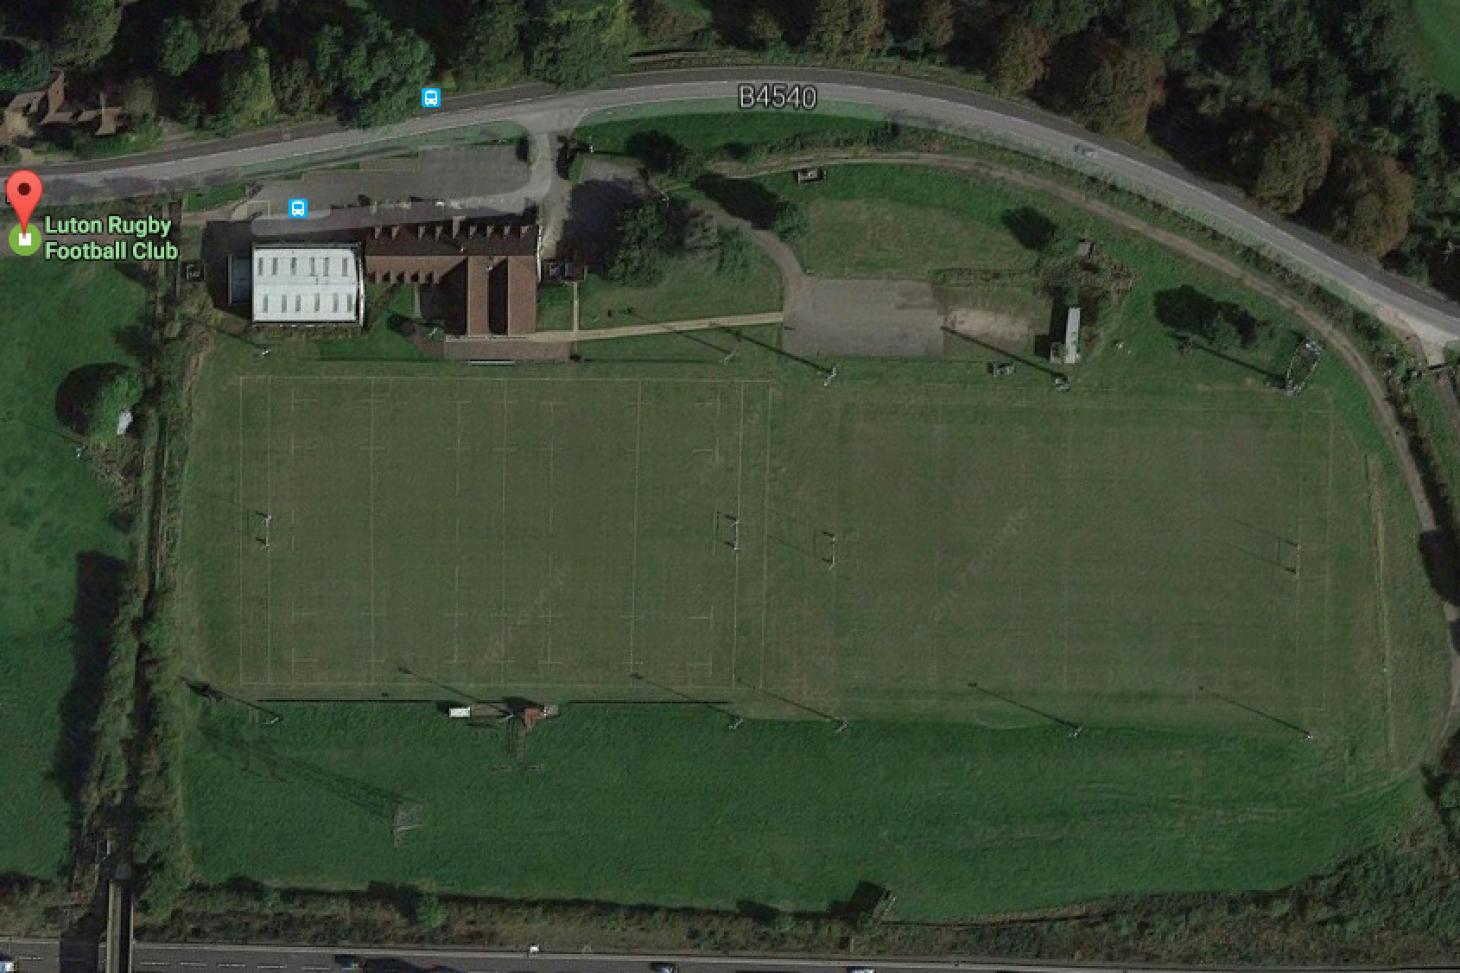 Luton RFC Union | Grass rugby pitch